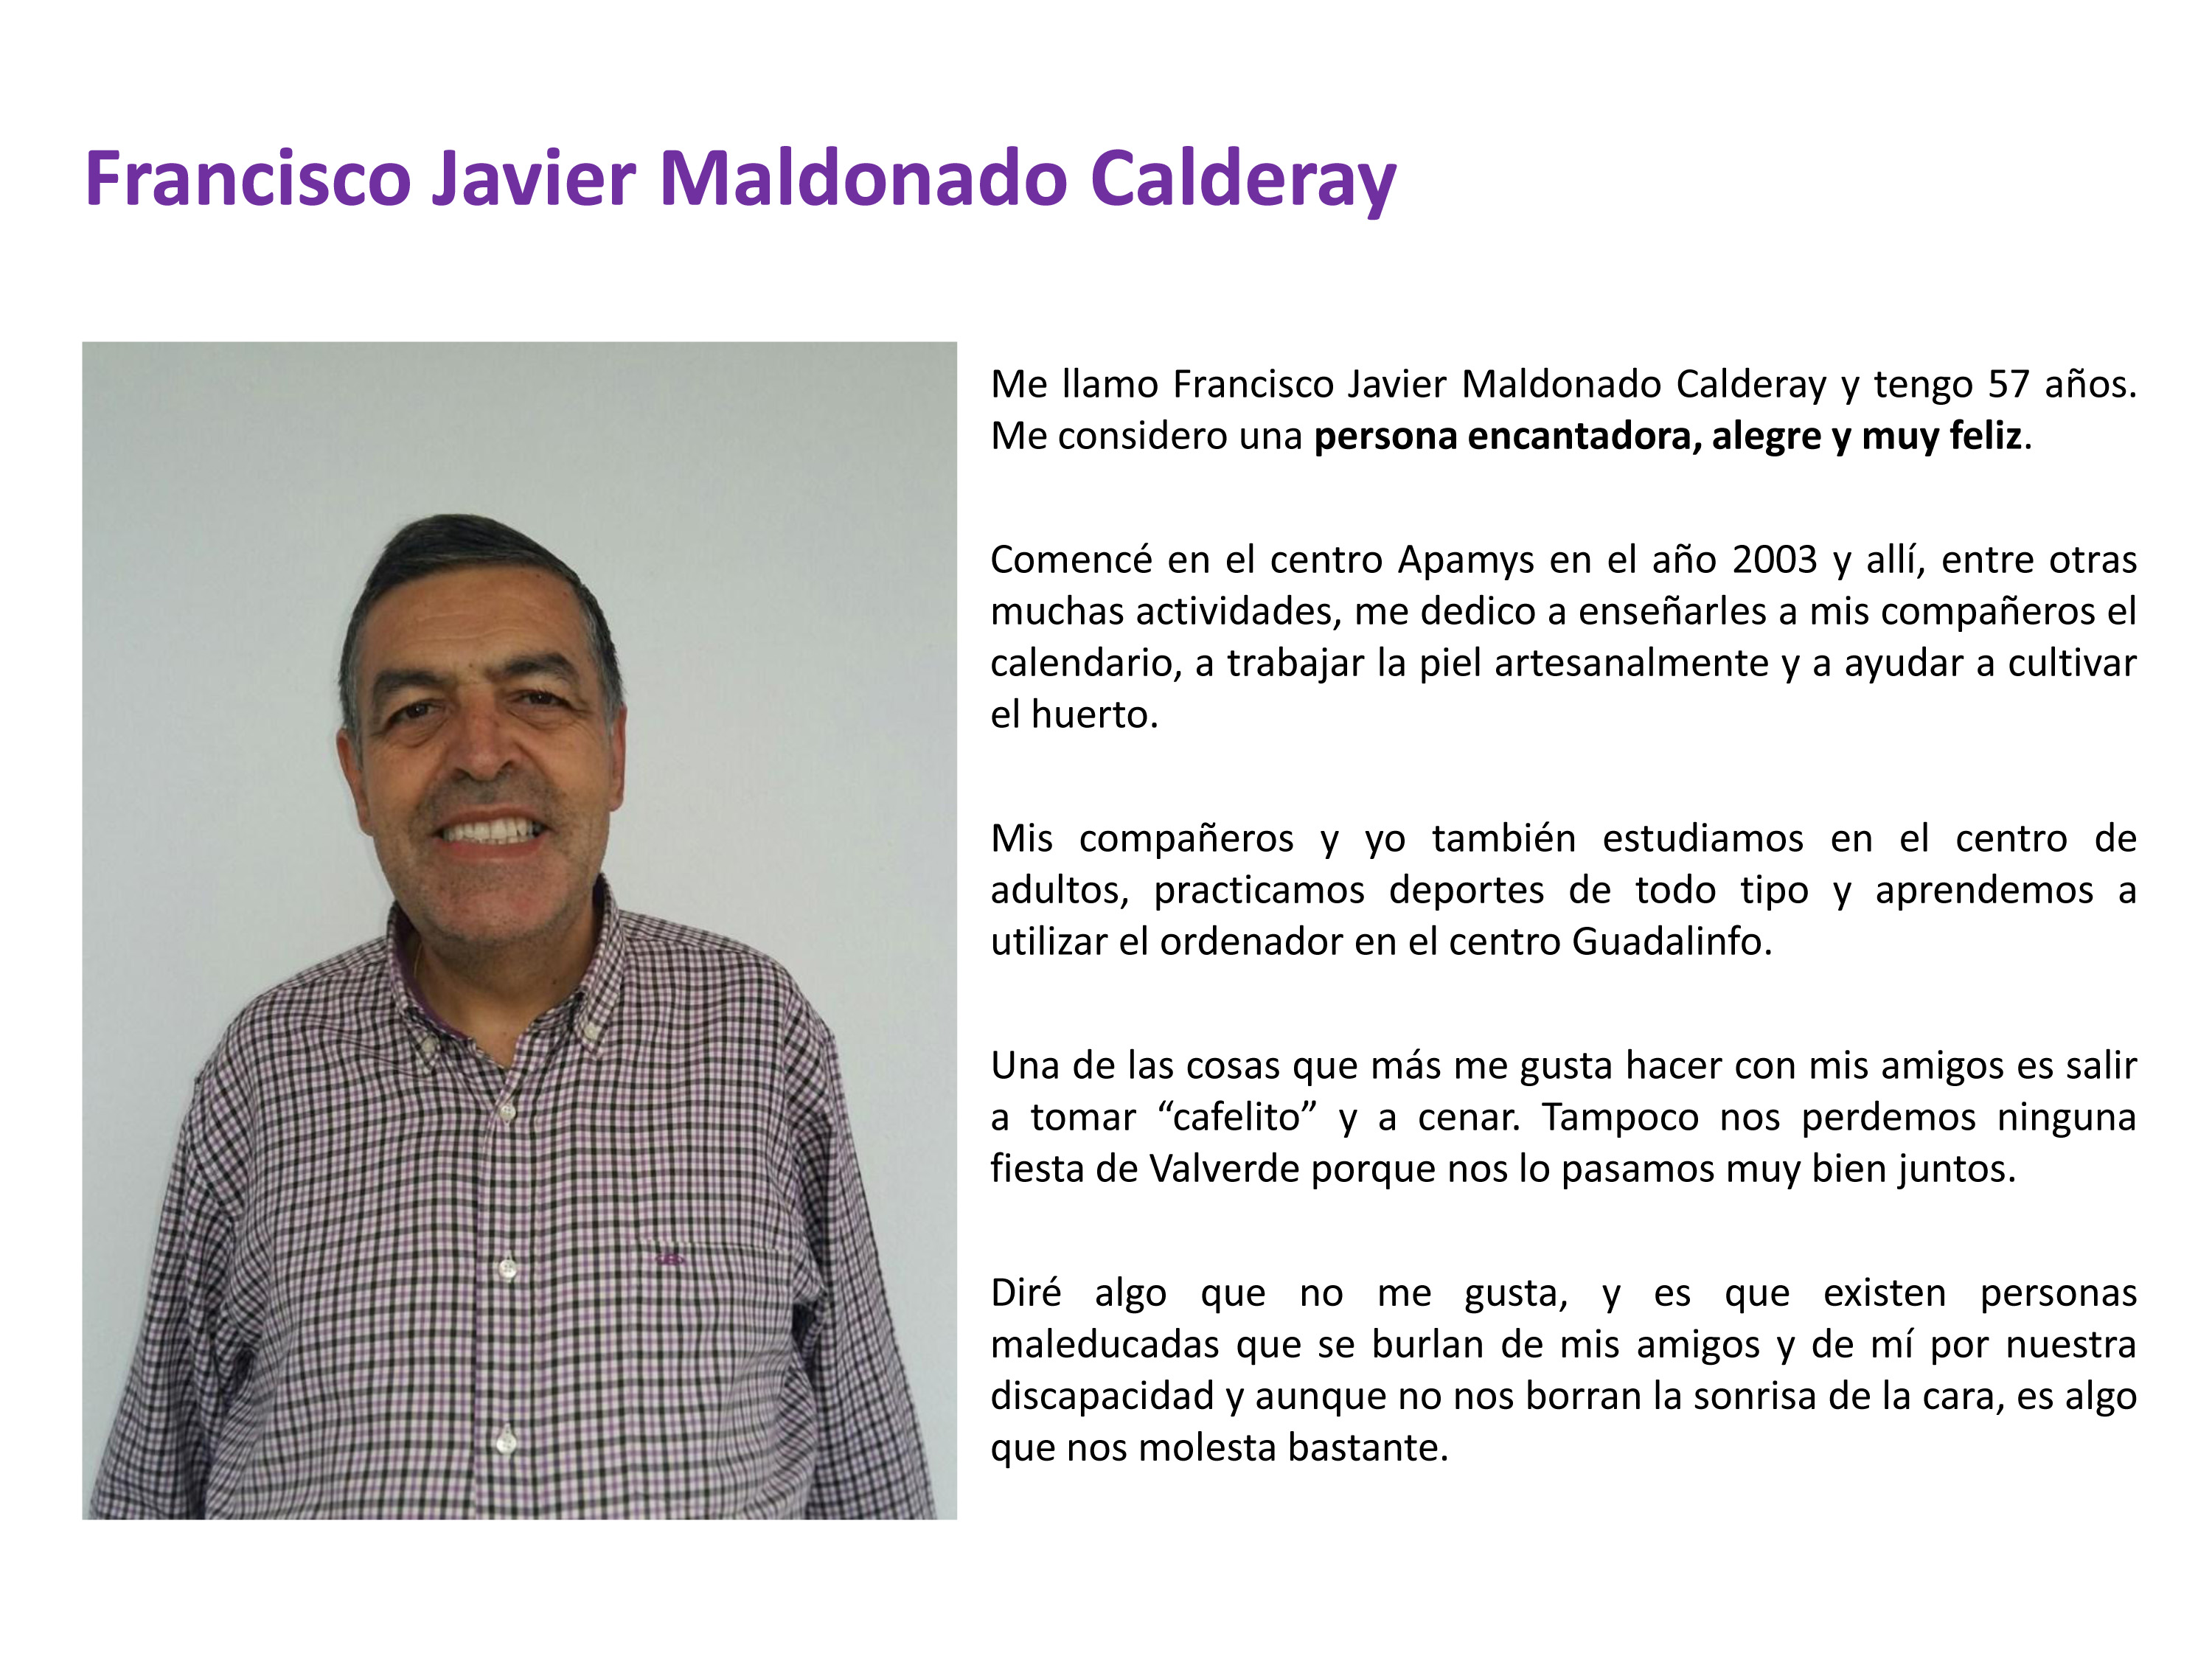 Francisco Javier Maldonado Calderay